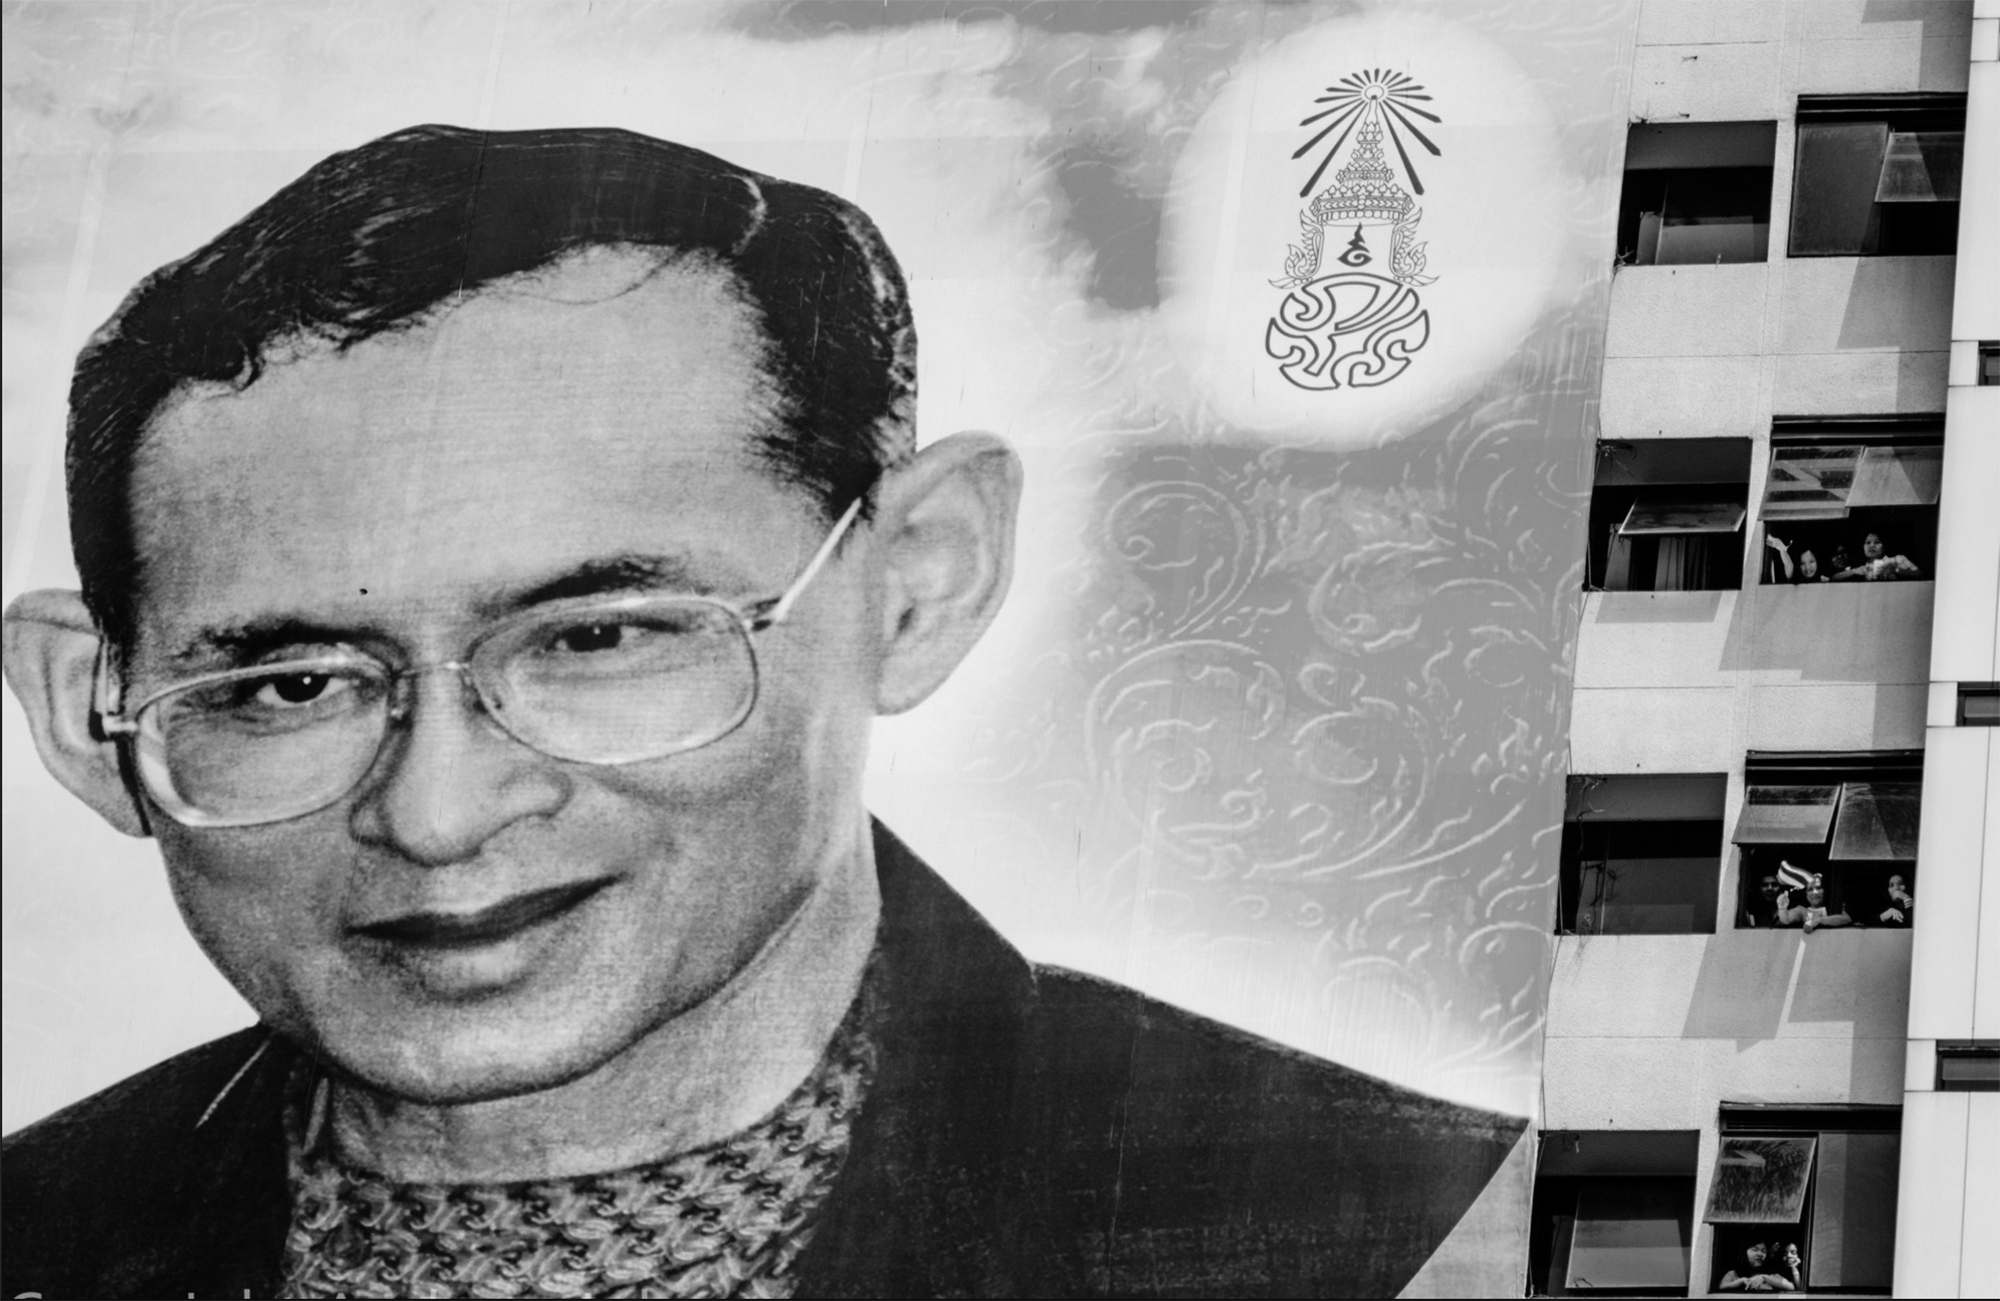 A large poster depicting the King Bhumibol Adulyadej of Thailand hanging outside of the Ministry of Environment building in Bangkok as workers wave to anti-government demonstrators during a period a massive protest against Prime Minister Yingluck Shinawatra.